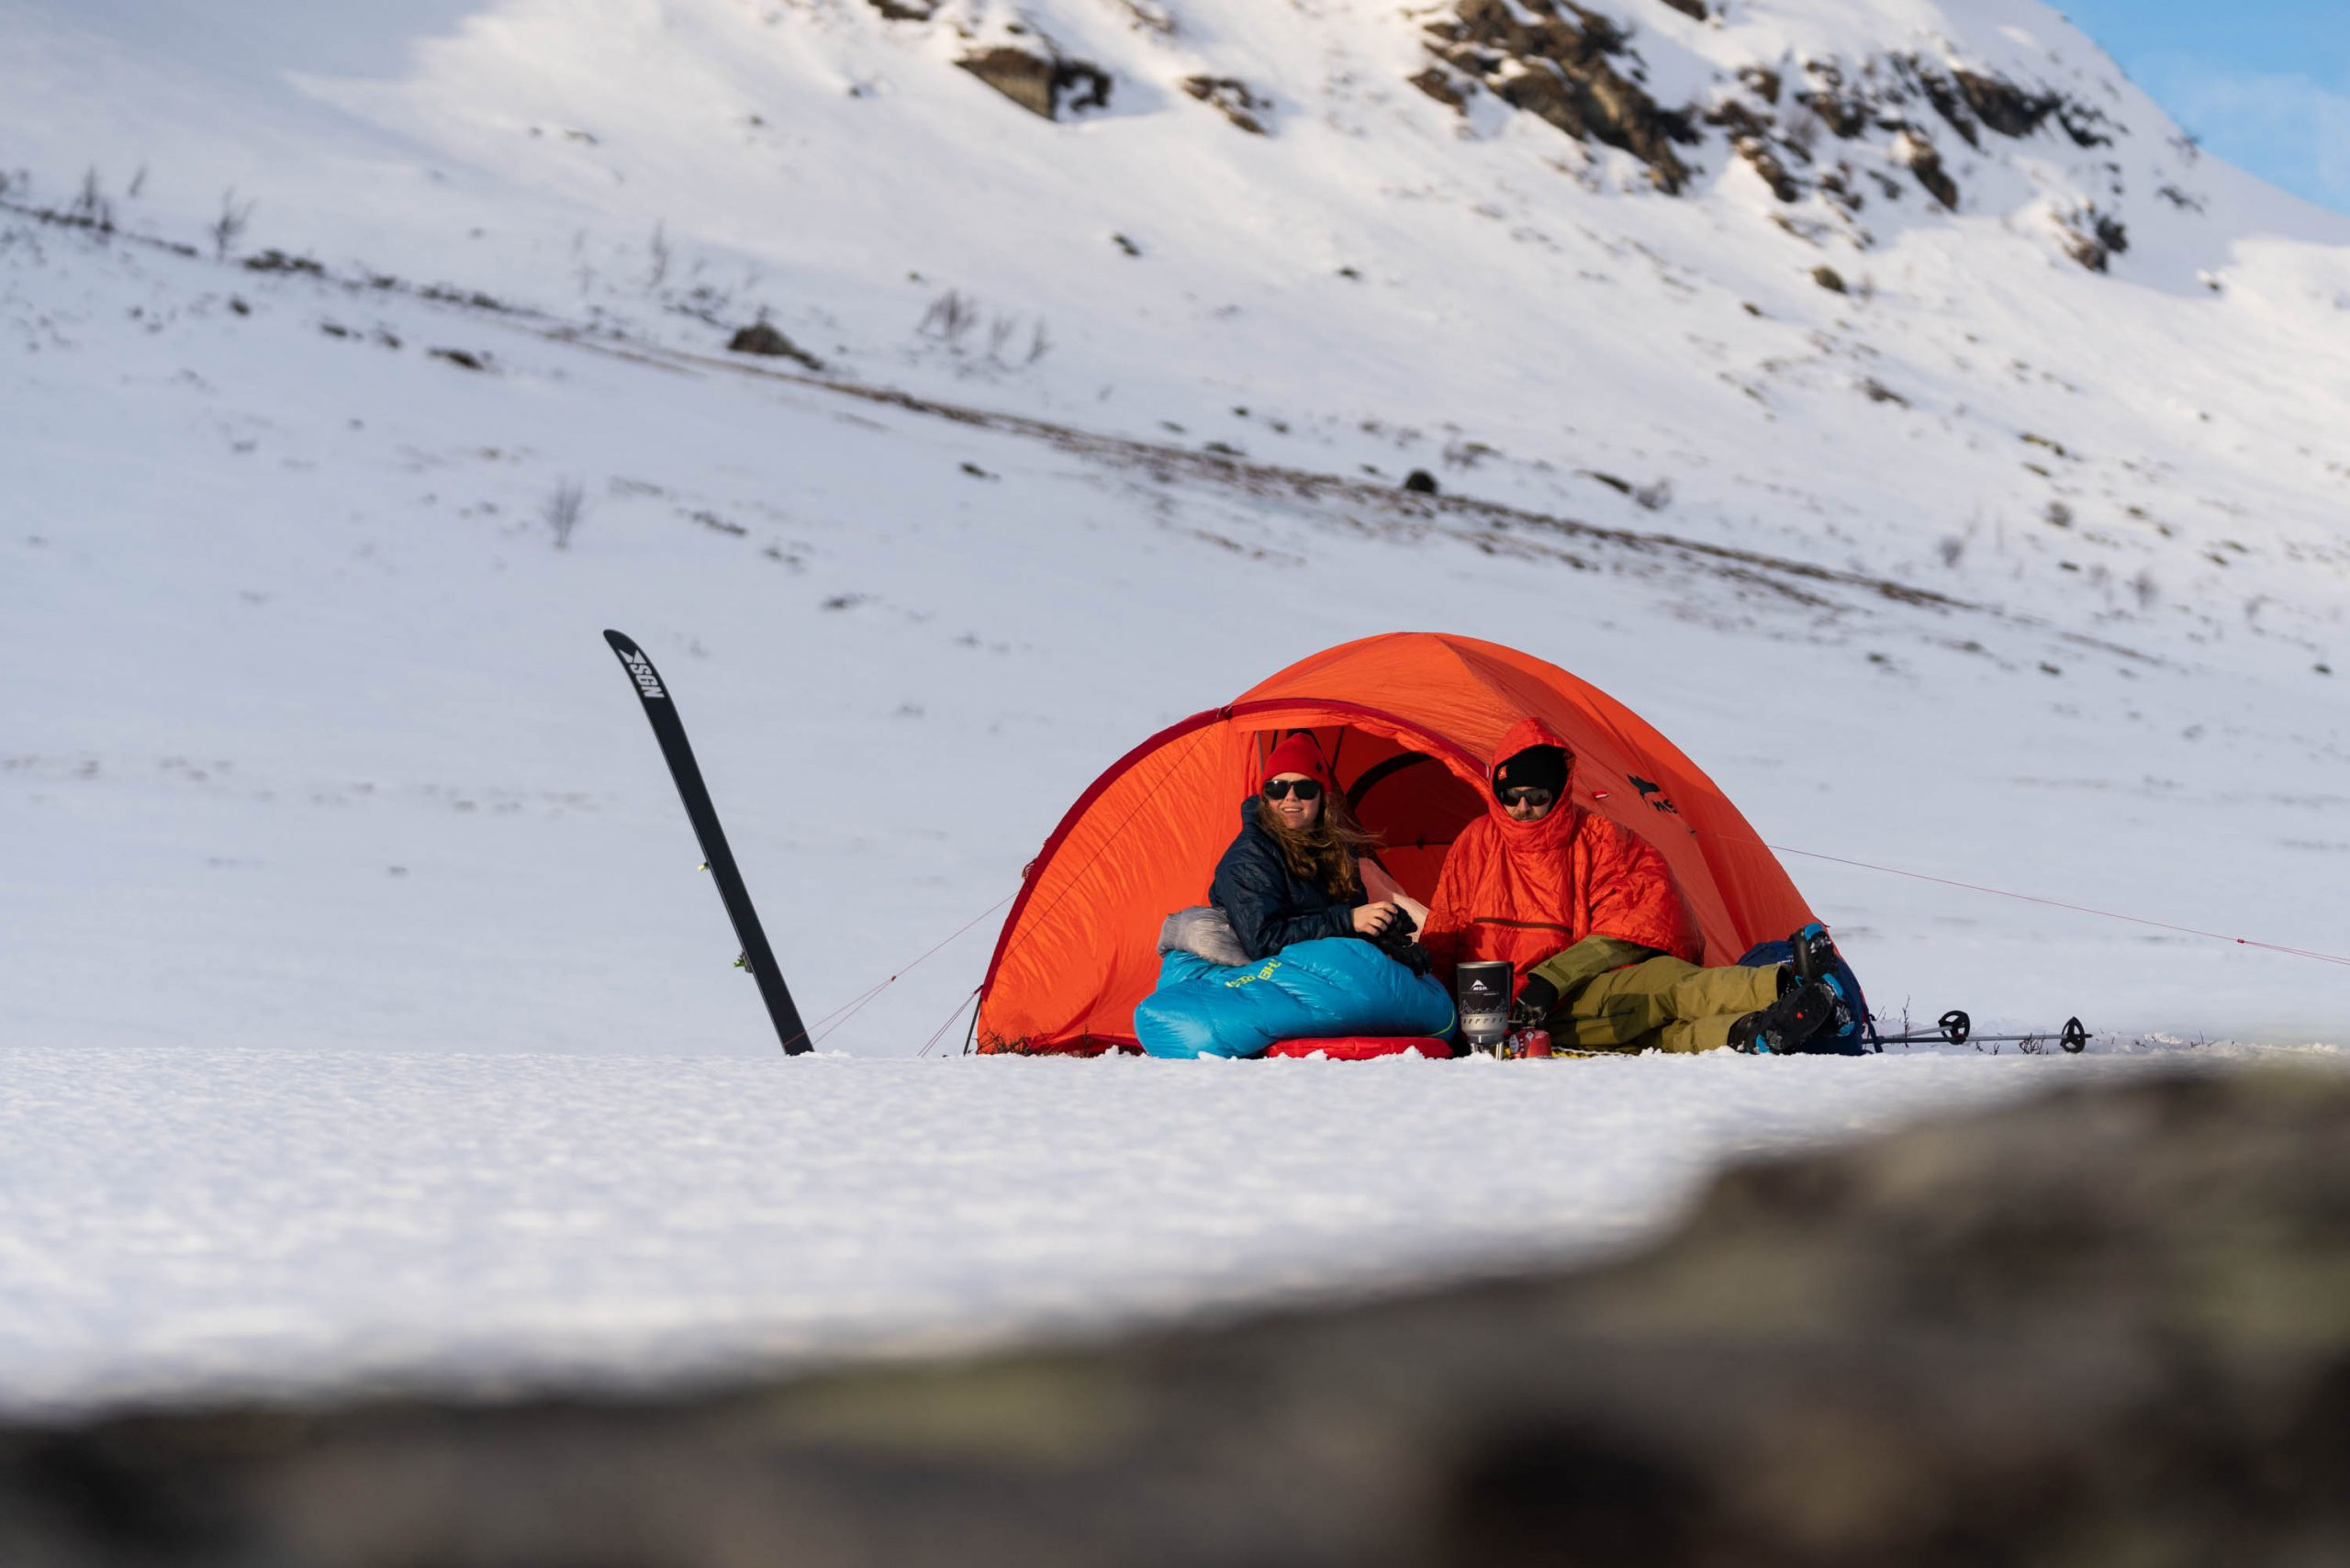 For snow camping, try to use a brightly colored tent so you're more visible should someone need to find you.